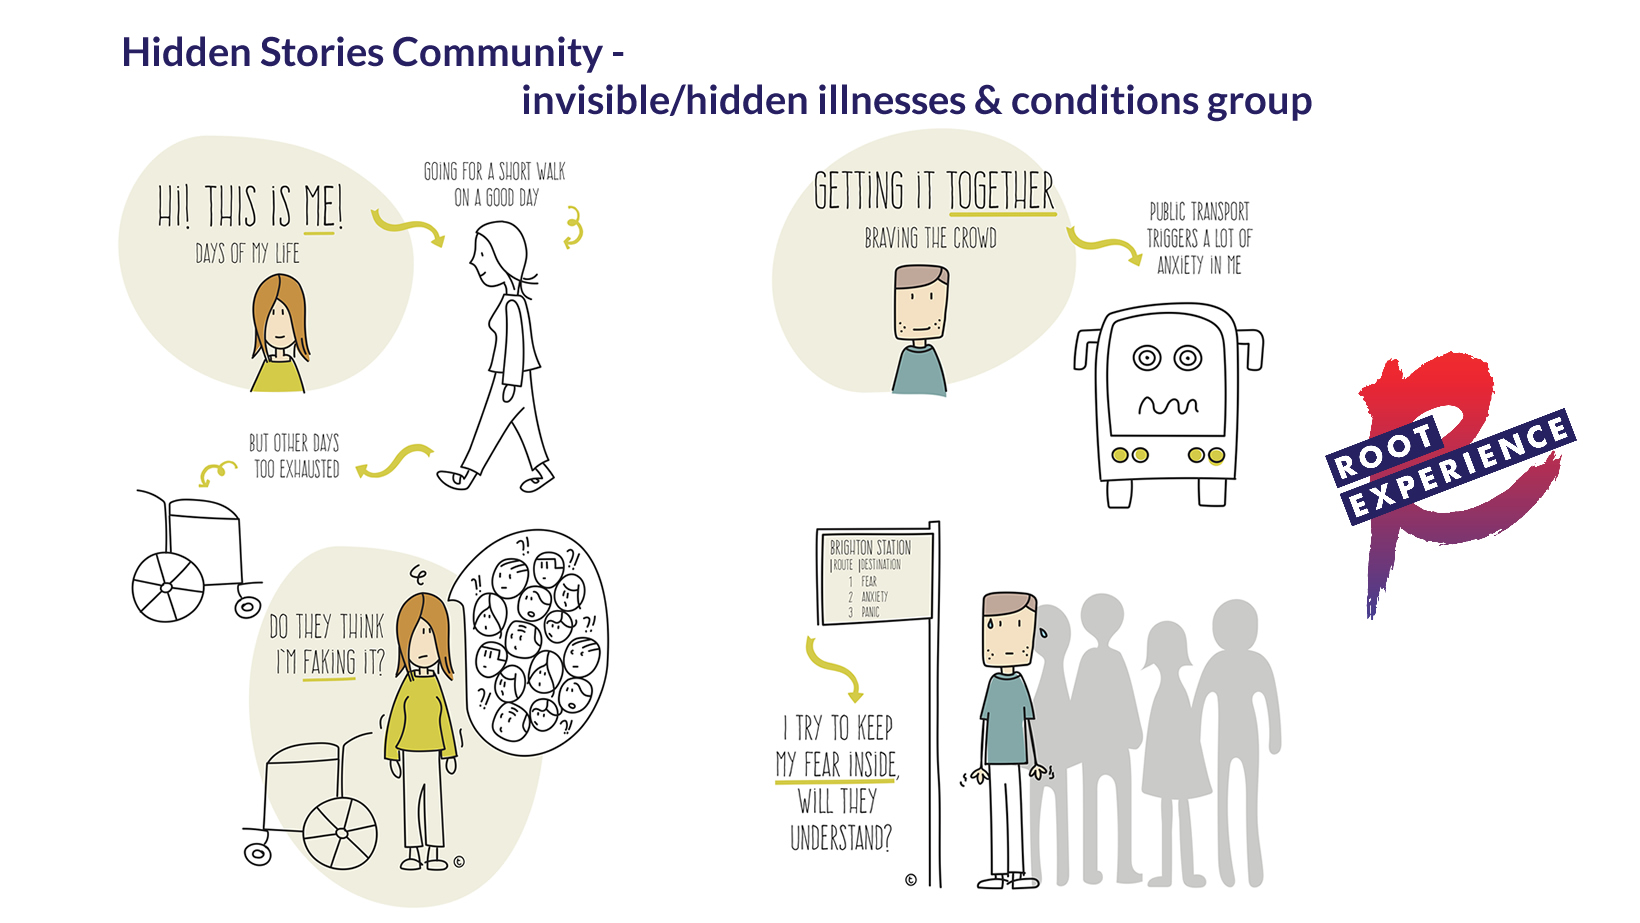 Hidden Stories Community - invisible/hidden illnesses and conditions group